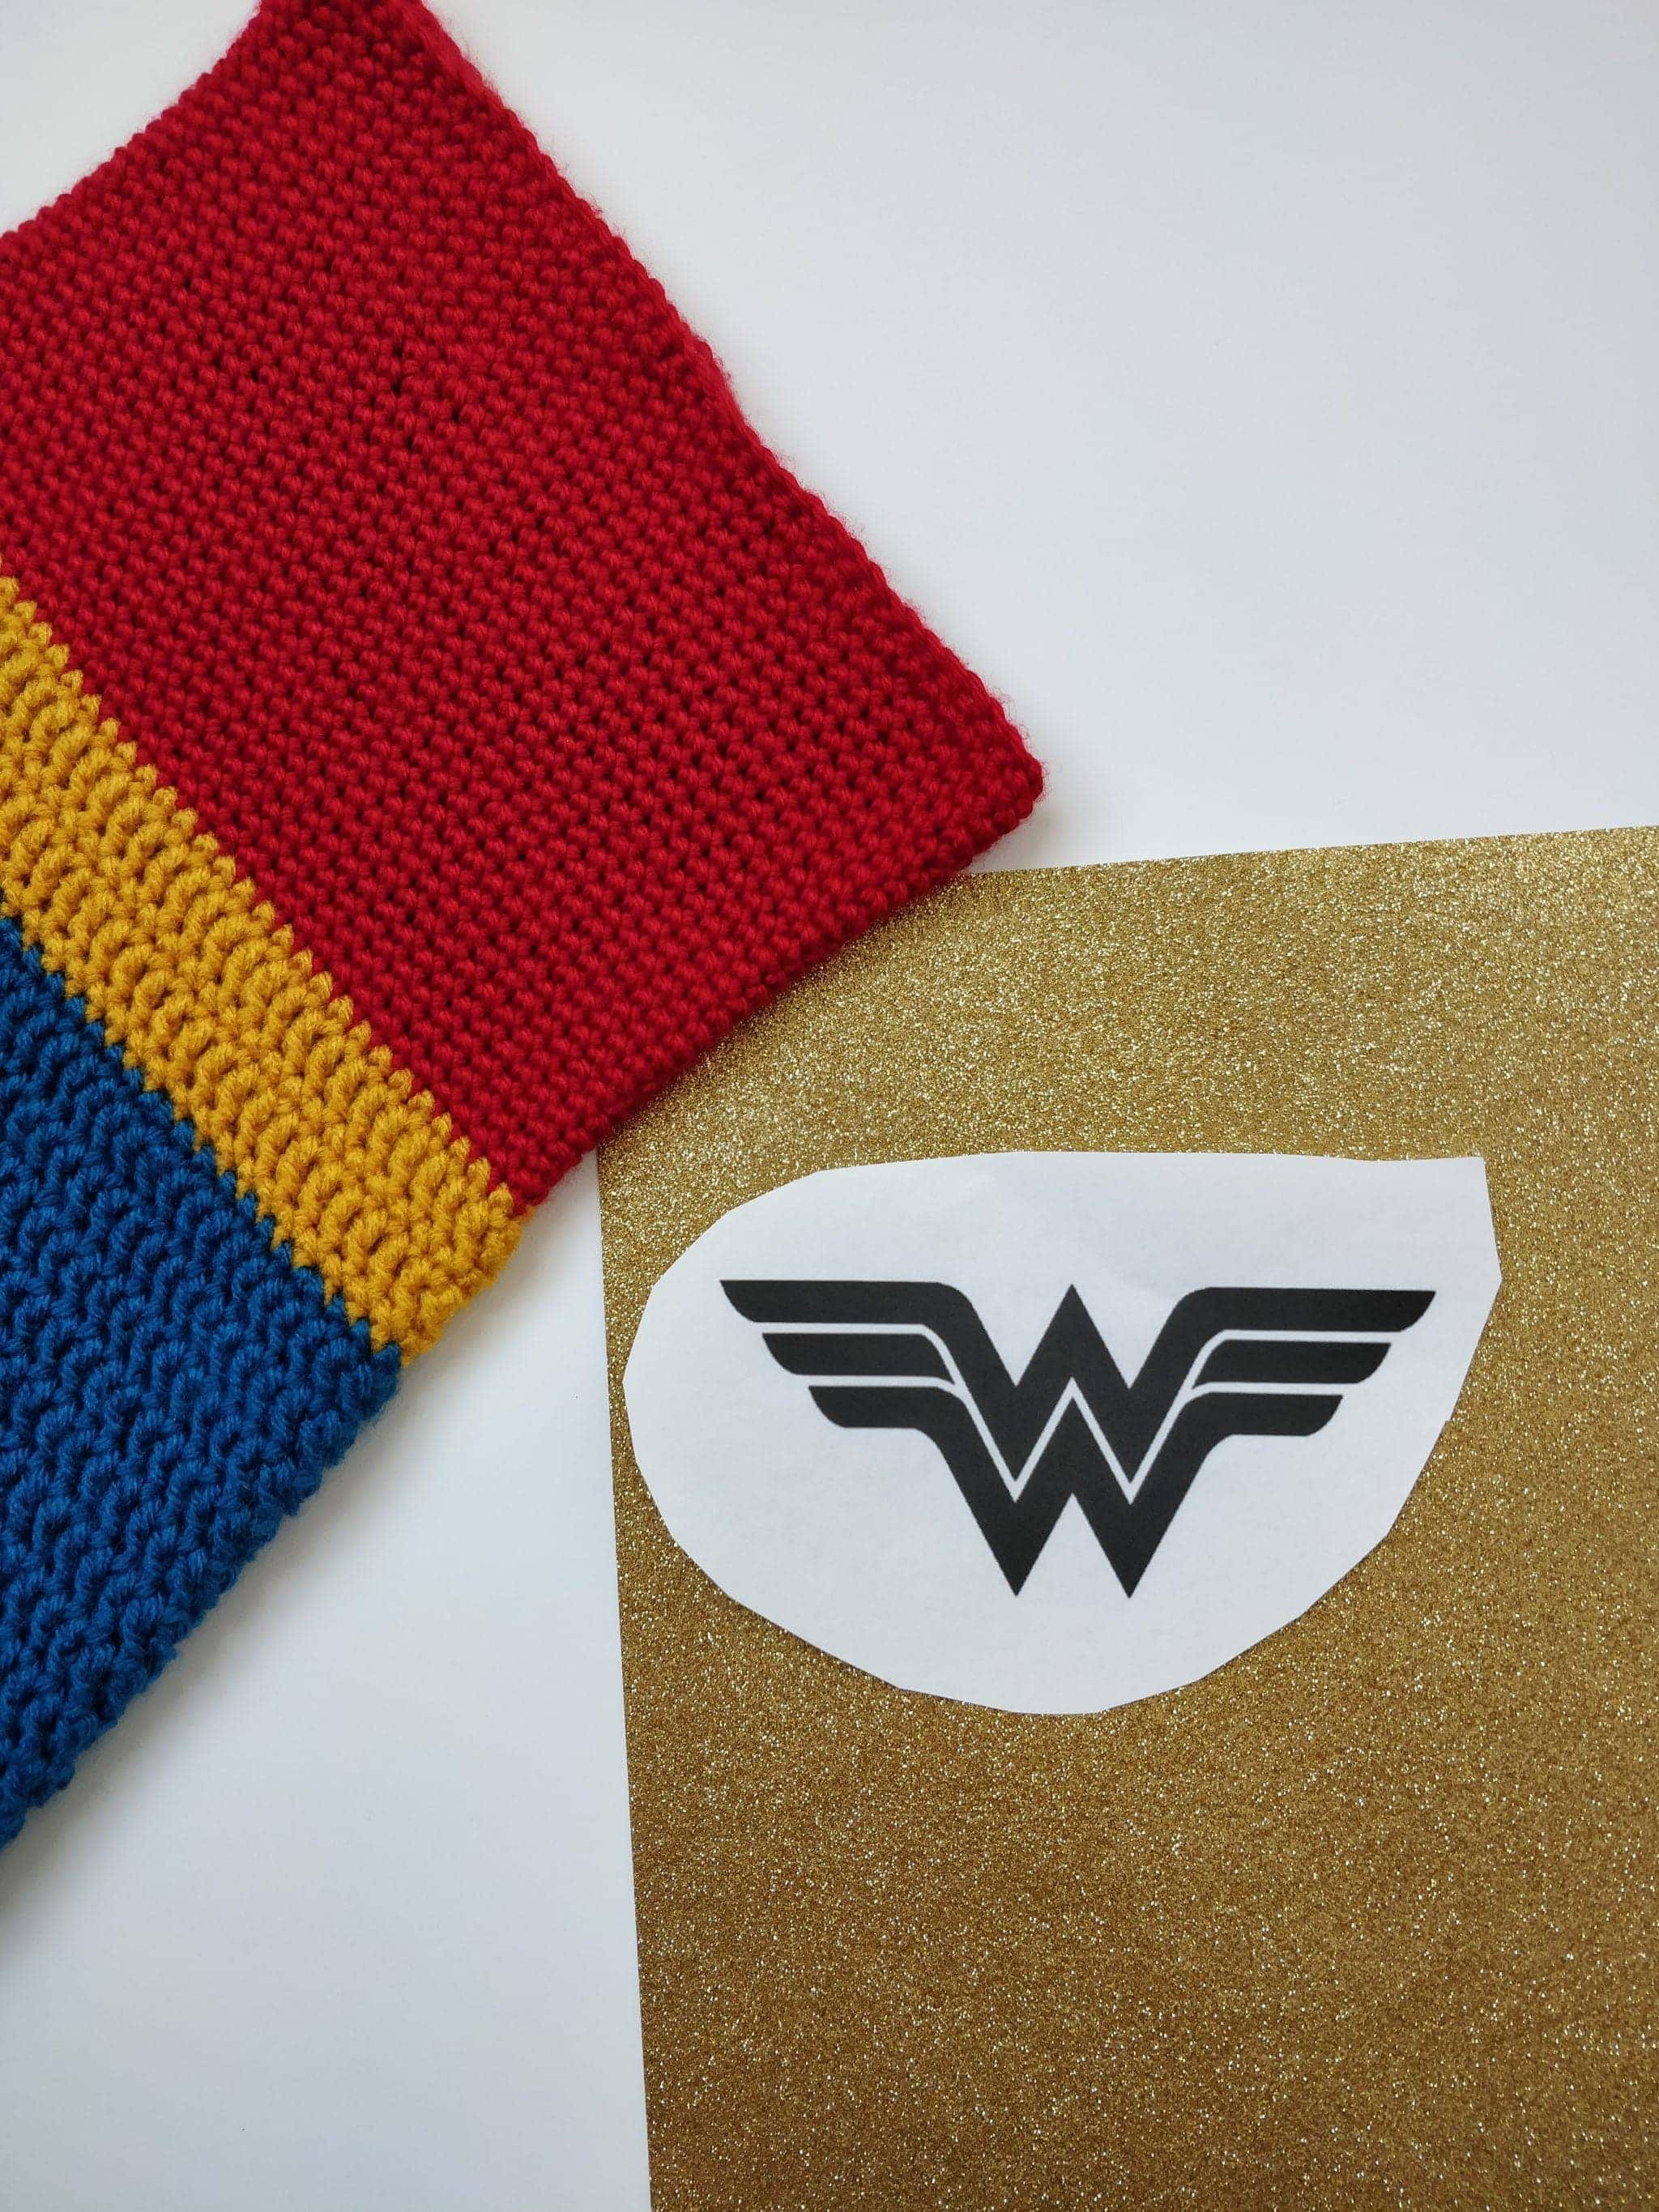 Wonder woman logo against gold background